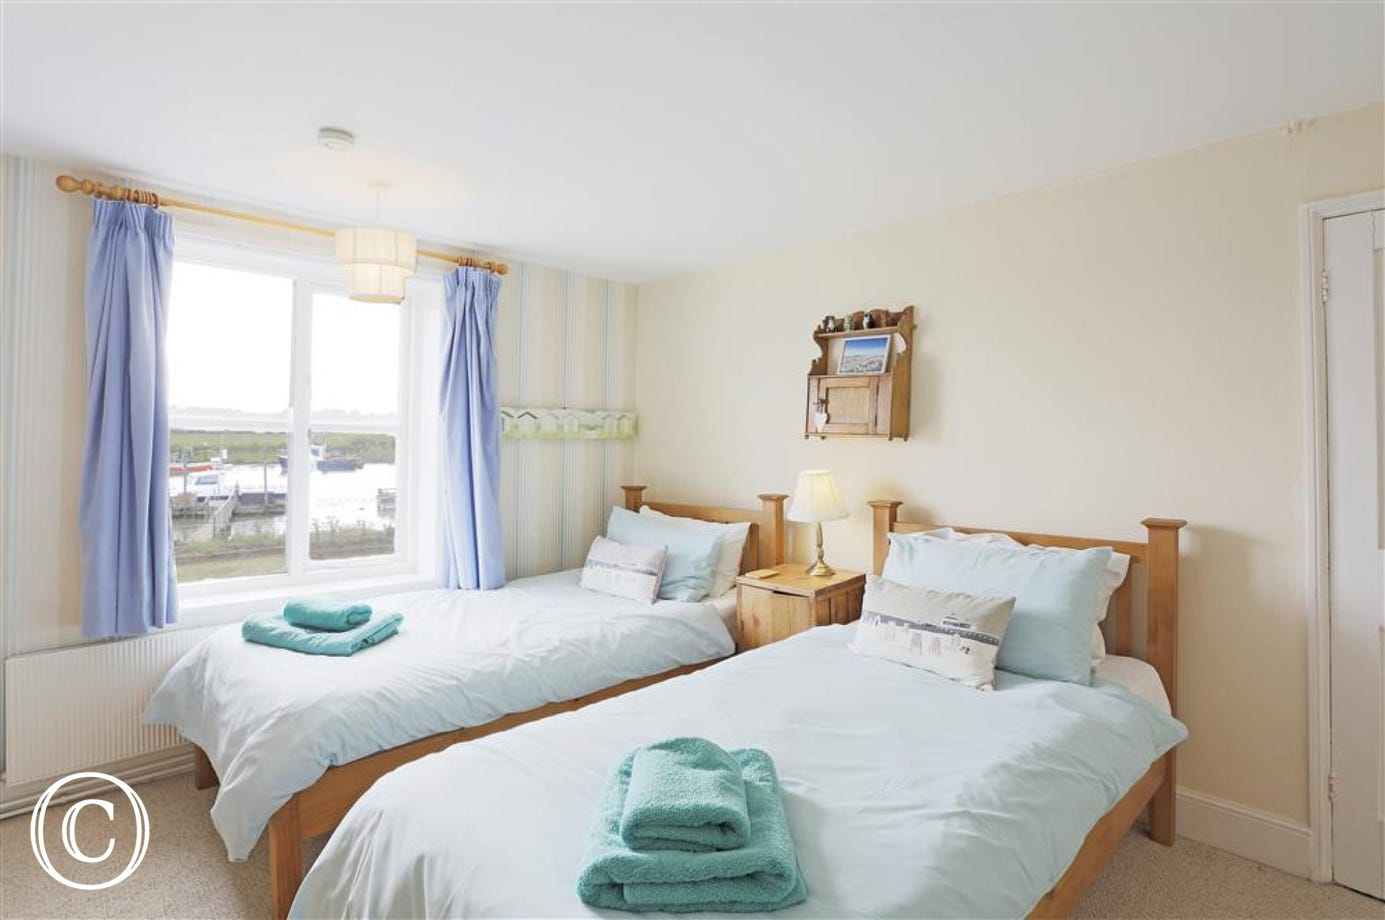 This twin room is one of three bedrooms providing comfort and luxury.